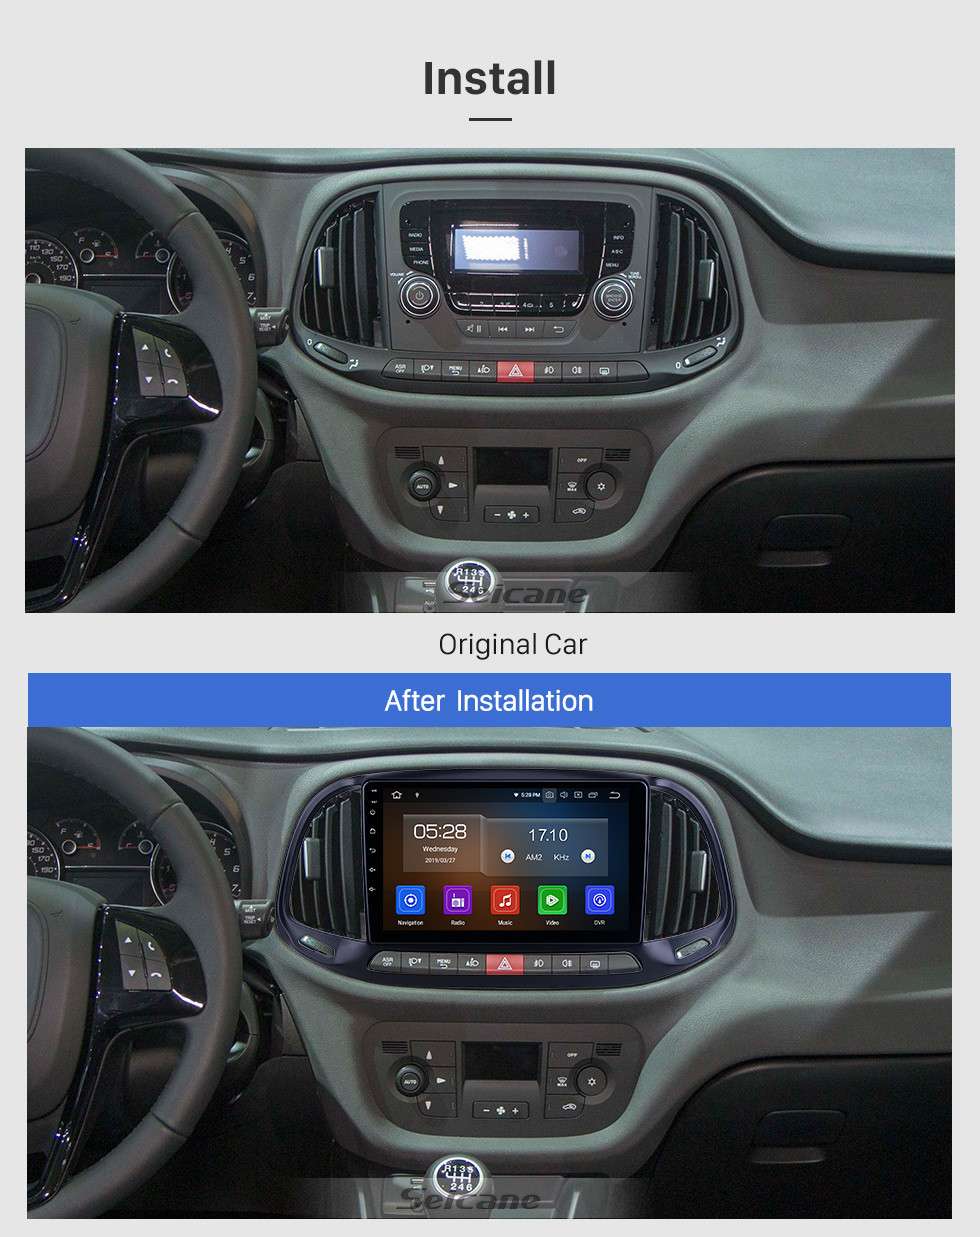 Seicane HD Touchscreen 9 inch for 2015 2016 2017 2018 2019 Fiat Doblo Radio Android 10.0 GPS Navigation System Bluetooth WIFI Carplay support DSP